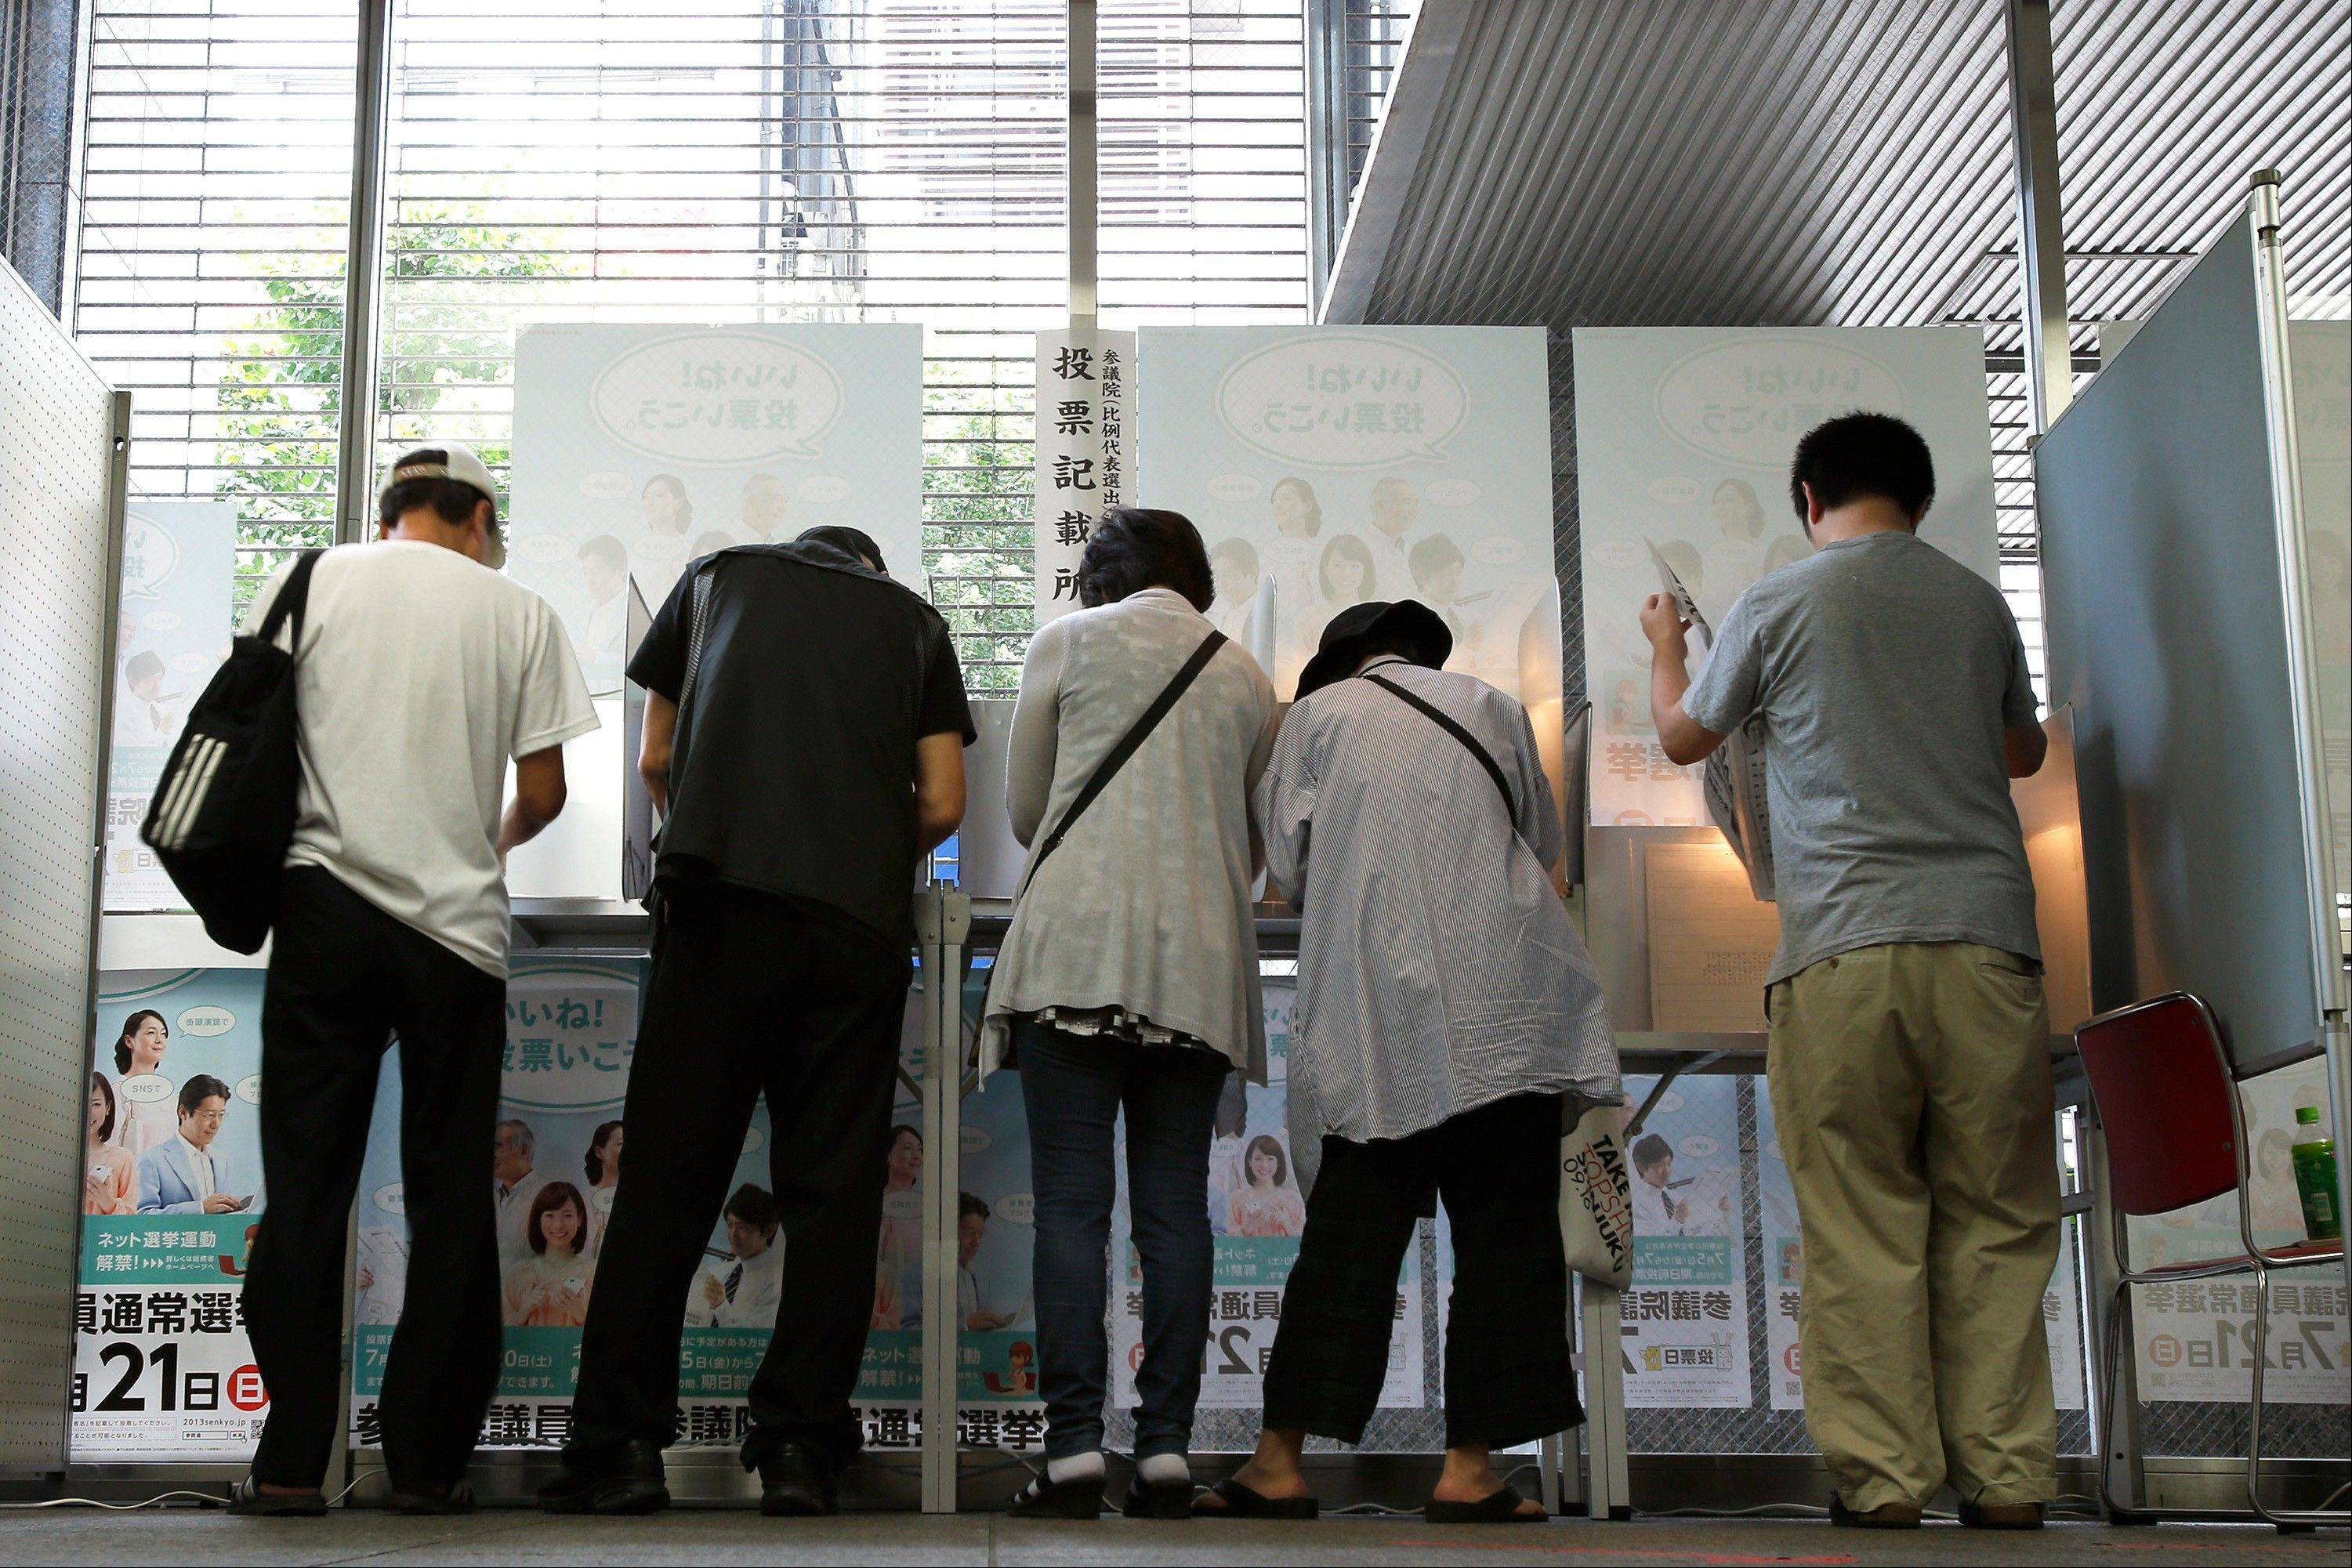 Voters fill out their ballots for the Japanese parliament's upper house election at a polling station in Tokyo, Japan, on Sunday, July 21, 2013. Japanese voters are set to hand Prime Minister Shinzo Abe control of both houses of Parliament, giving him a mandate to extend his overhaul of the world's third-biggest economy.